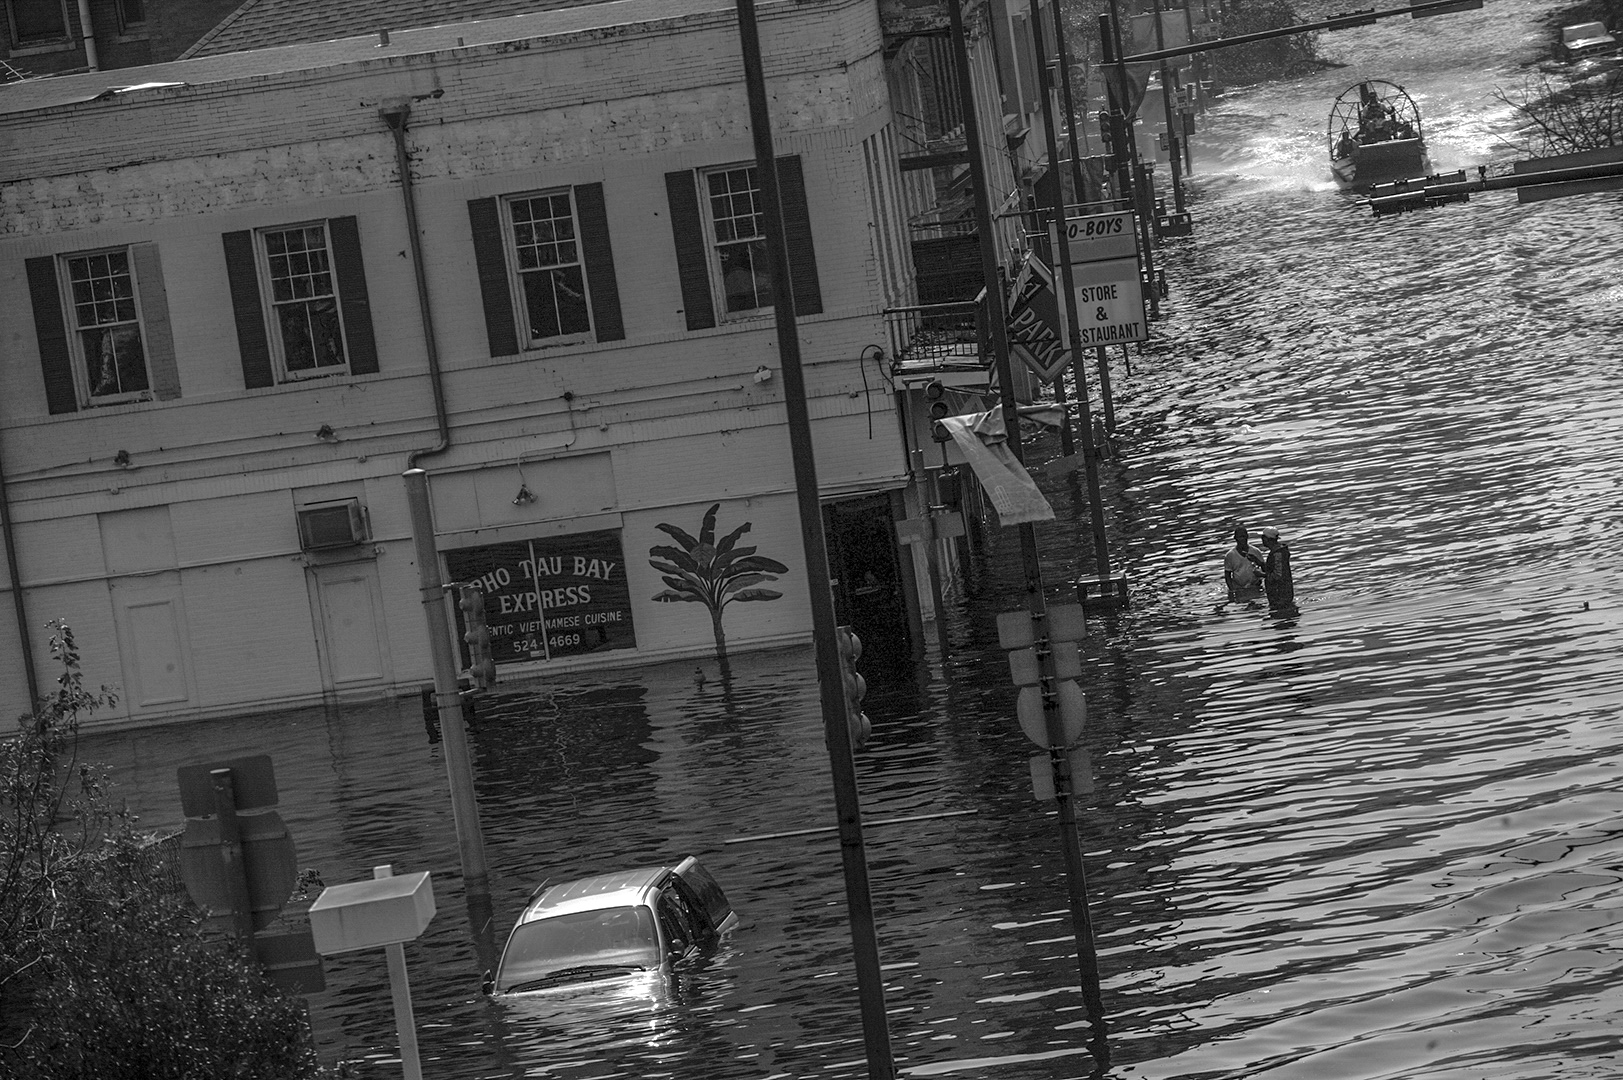 New Orleans, Louisiana  - Early In the morning on August 29, 2005 Hurricane Katrina made landfall in the Gulf Coast of the United States. With winds up to 140 mile per-hour the storm caused significant damage, however the failure of the levee system resulted in the heavy flooding and the loss of life which ensued.